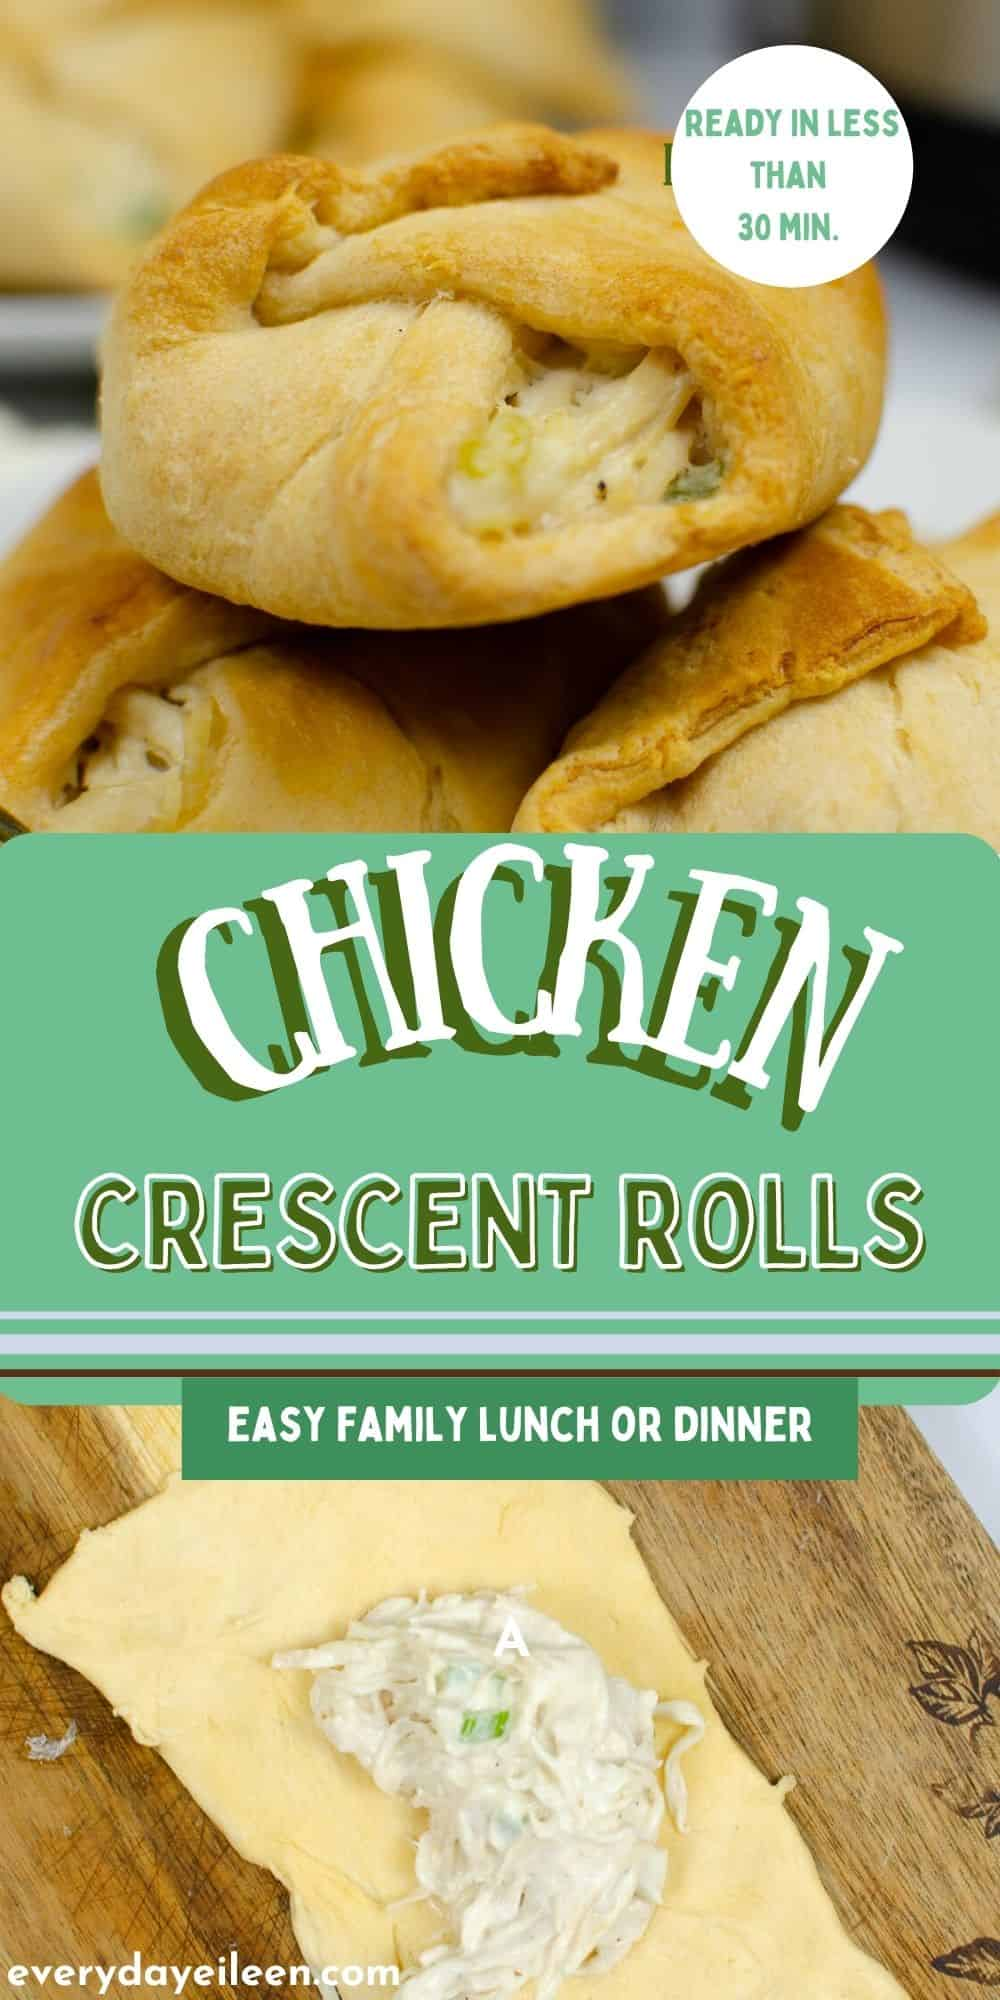 Homemade chicken crescent rolls are filled with tender chicken in a smooth cream cheese sauce wrapped in canned crescent rolls. This easy family friendly meal is ready in less than 30 minutes. A very kid-friendly recipe, ever my picky eaters love this one. A great recipe to feed a crowd for family parties, Holiday parties, tailgating. via @/everydayeileen/